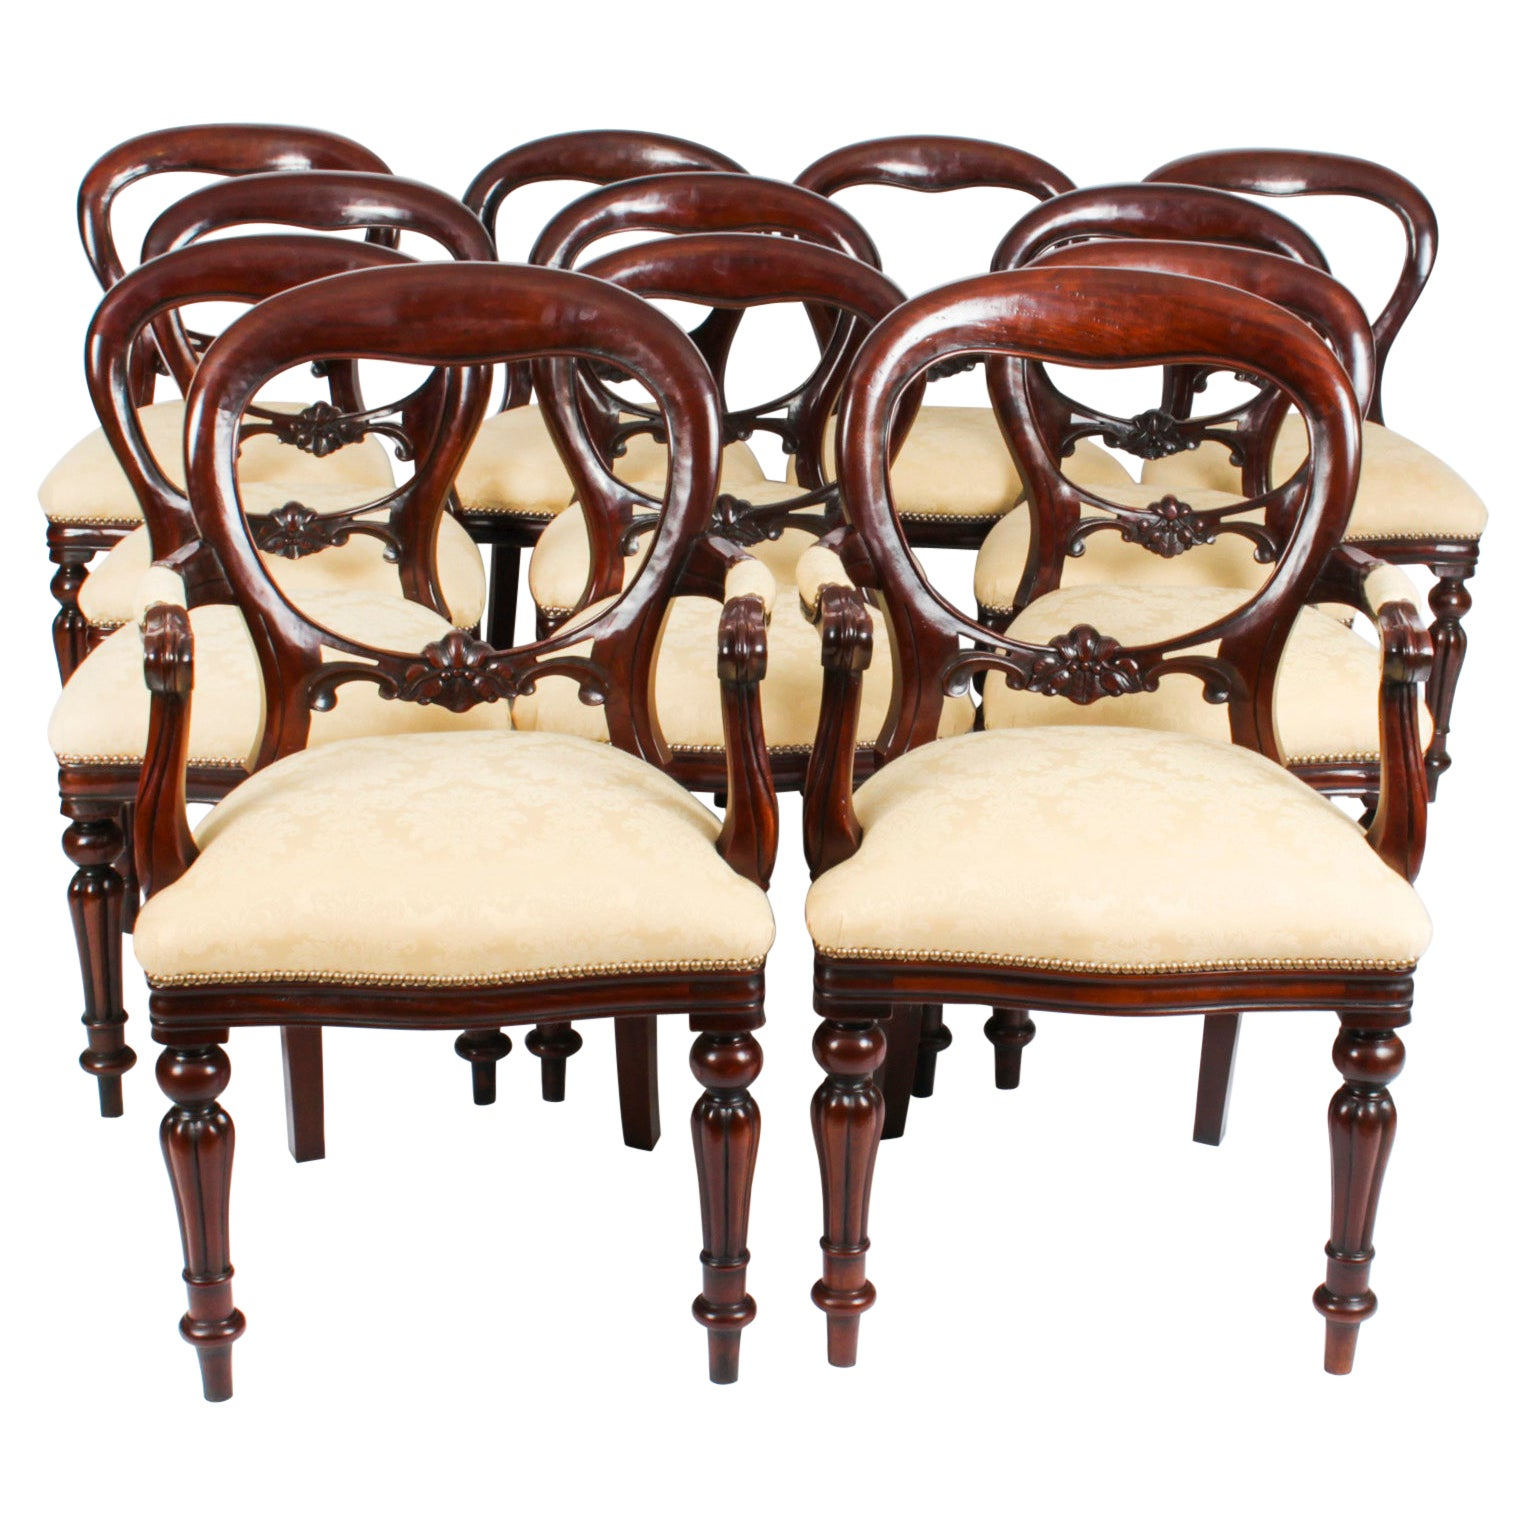 Vintage Set 12 Victorian Revival Balloon back Dining Chairs 20th C